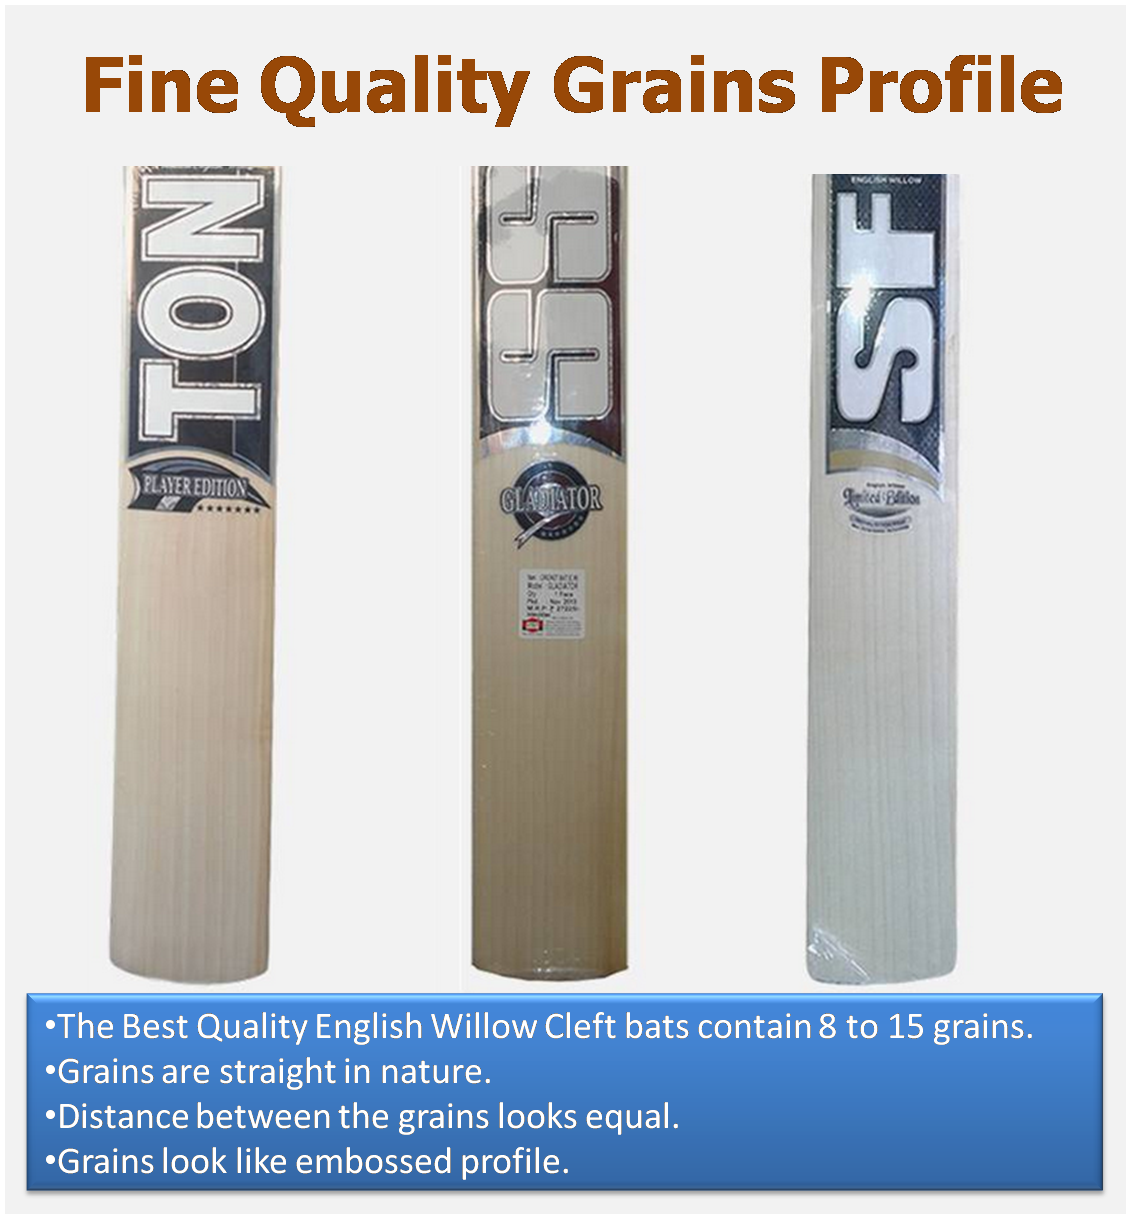 Top End English willow Cleaft Cricket Bats , Best Grains Profile